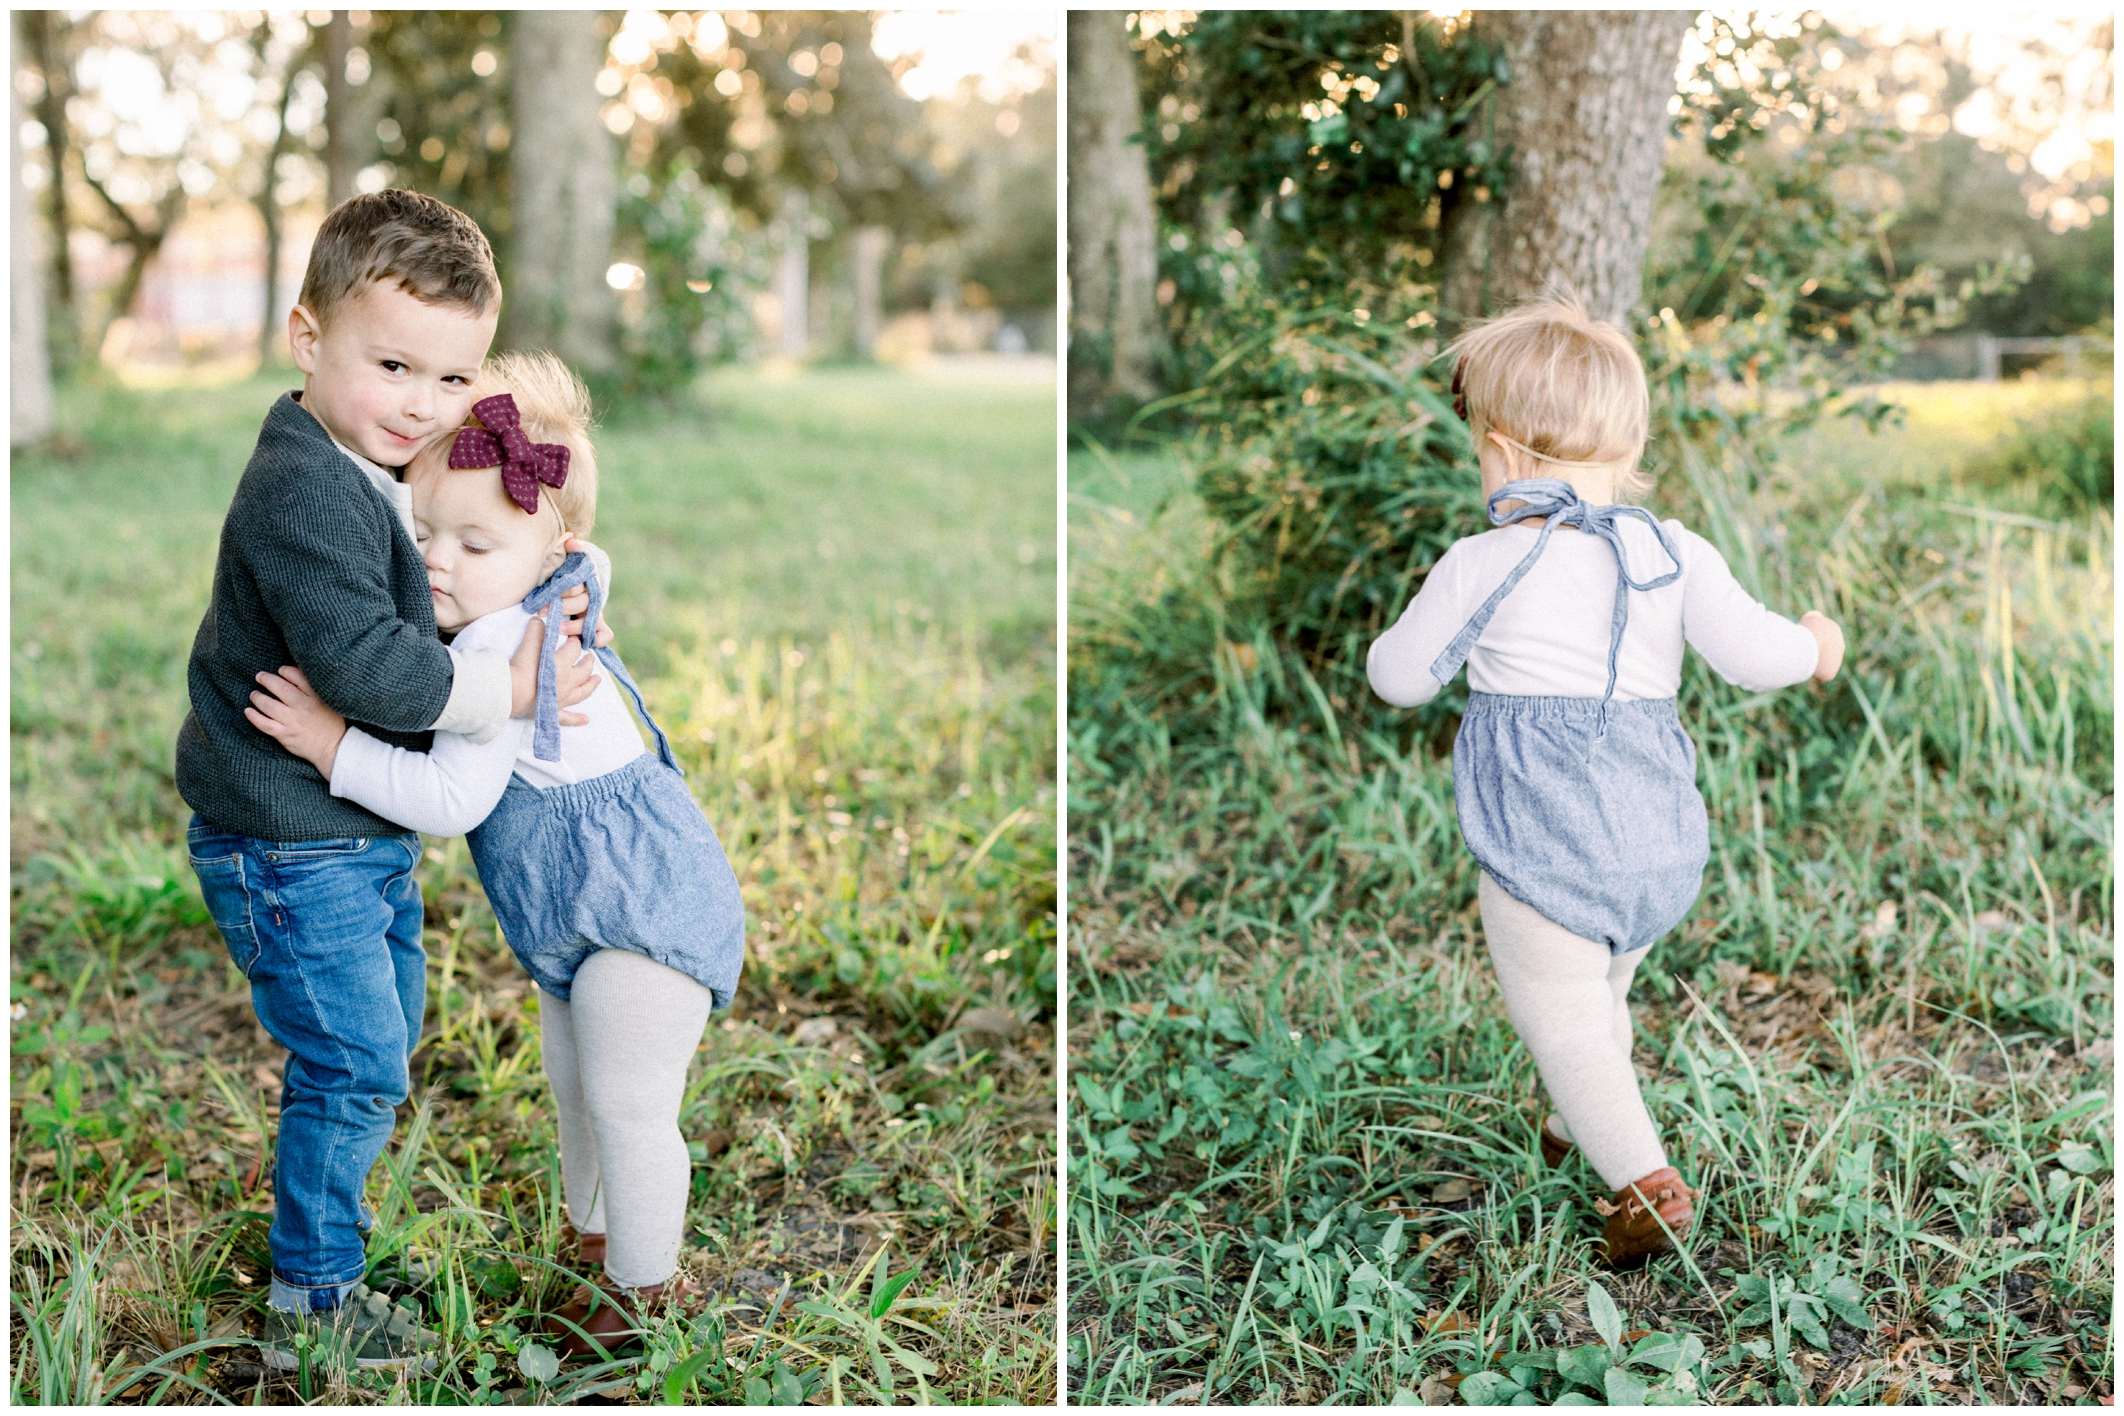 Lisa Silva Photography- Ponte Vedra Beach, St. Augustine and Jacksonville, Florida Fine Art Film Destination Wedding Photography- Family Lifestyle Session in St. Augustine_0002.jpg